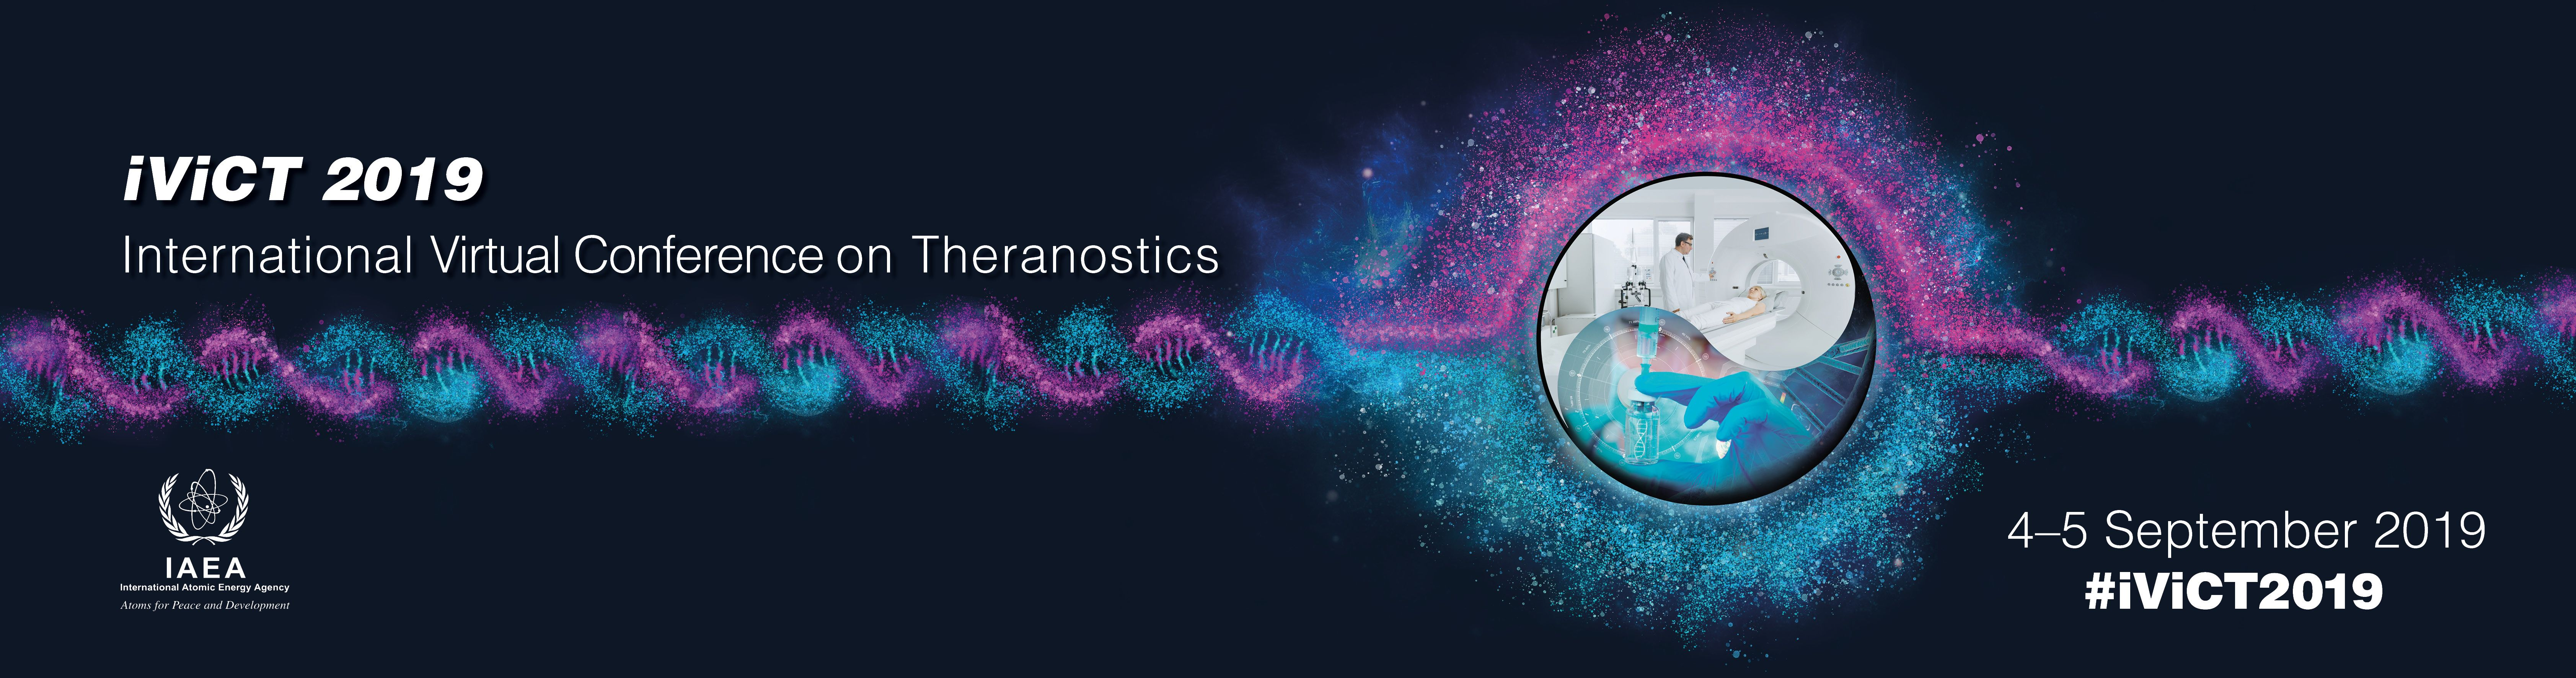 International Virtual Conference in Theranostics (iViCT 2019) | The